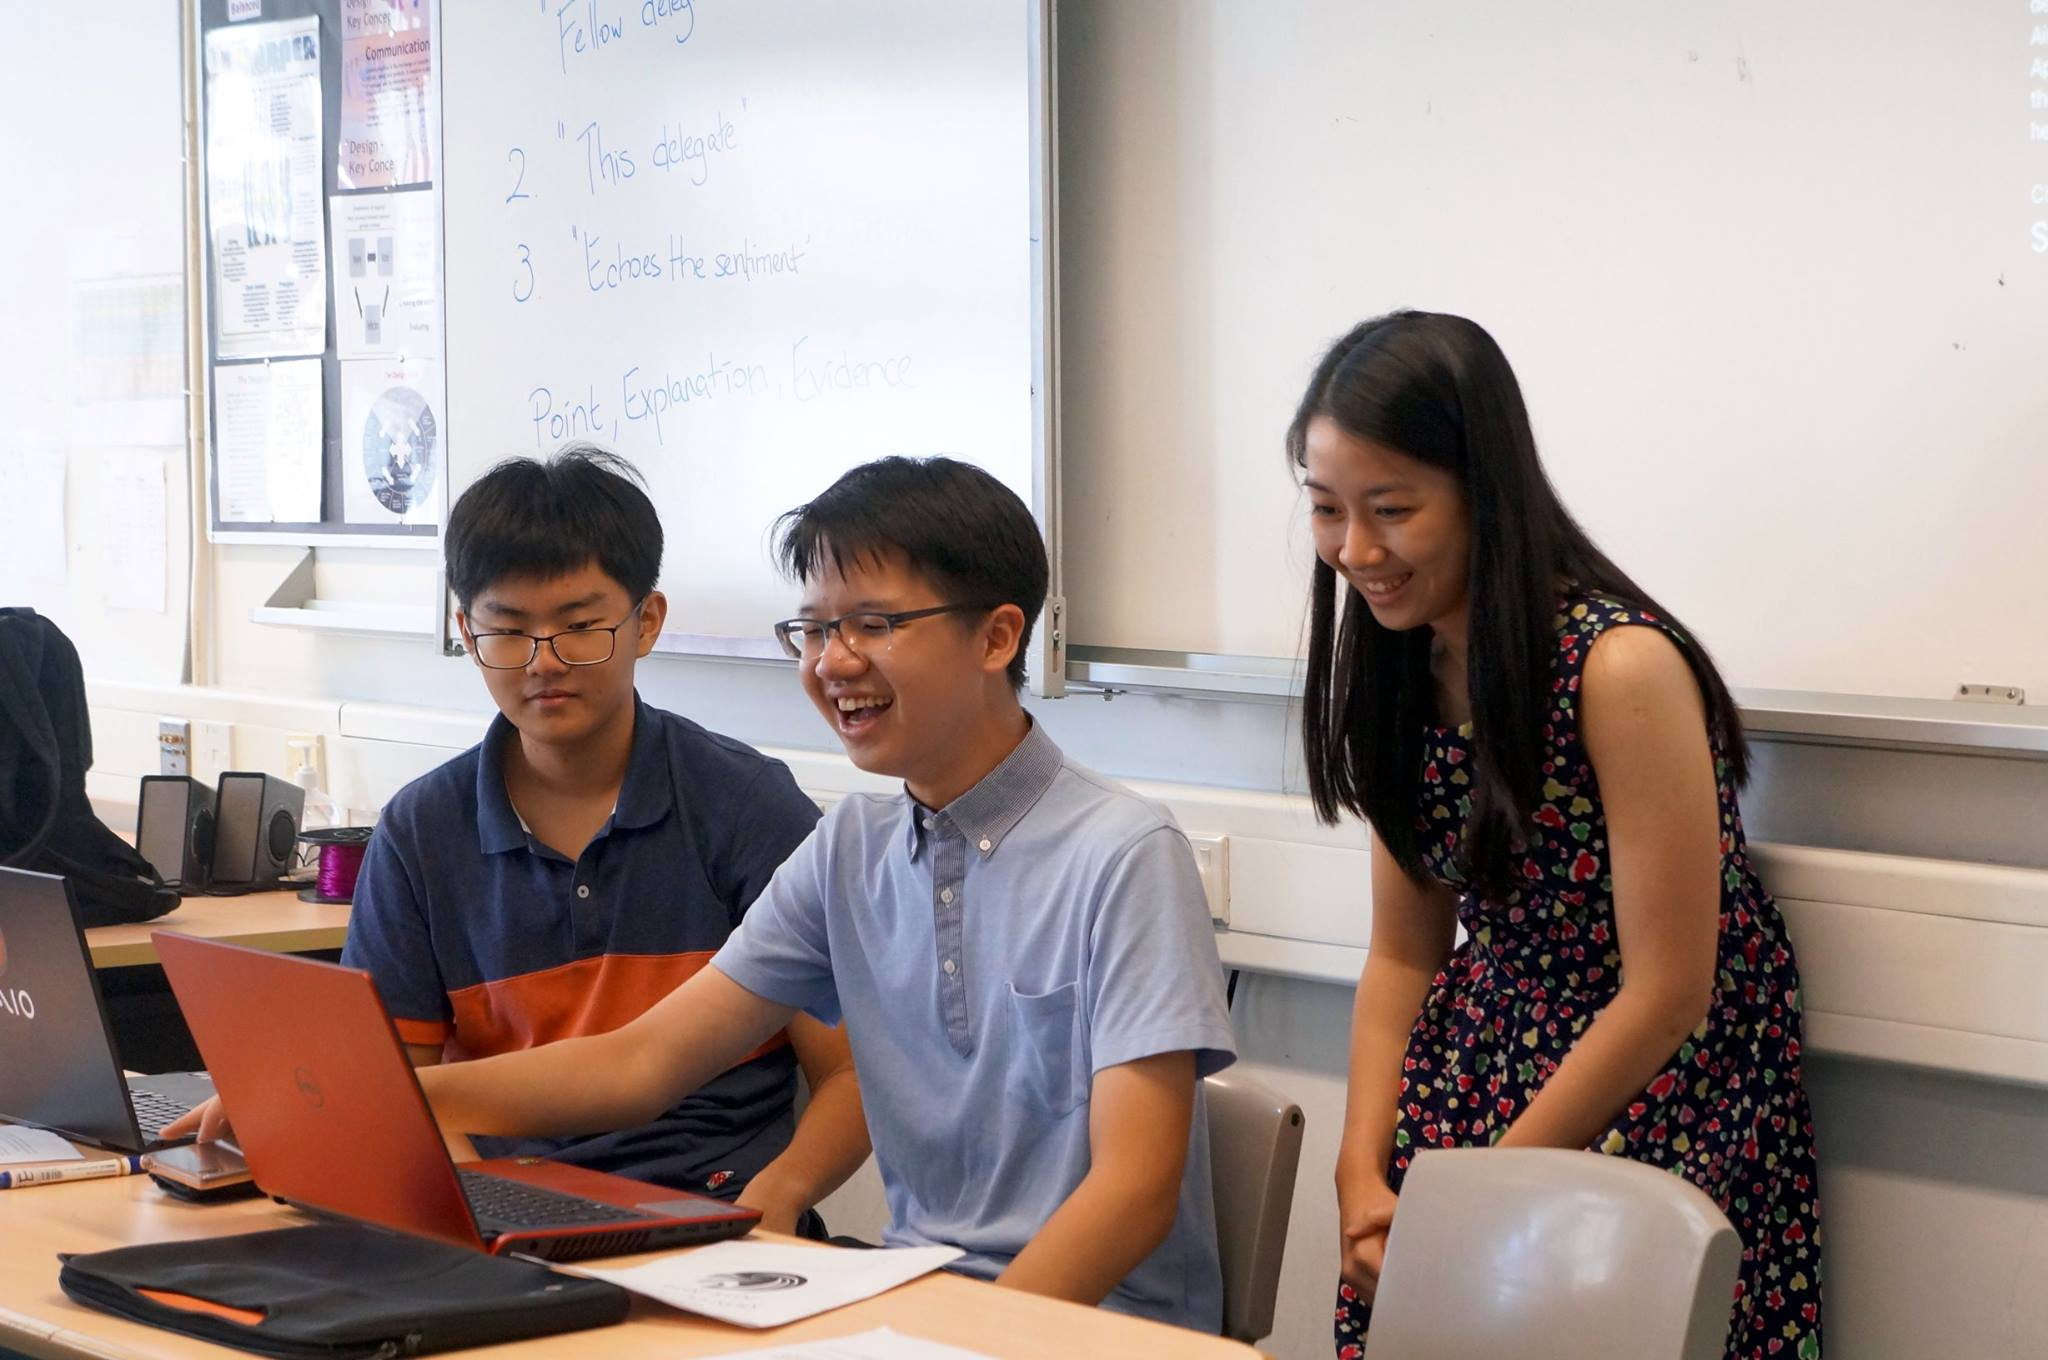 We strive to bring the best students in Hong Kong together to share their talents and knowledge with others.